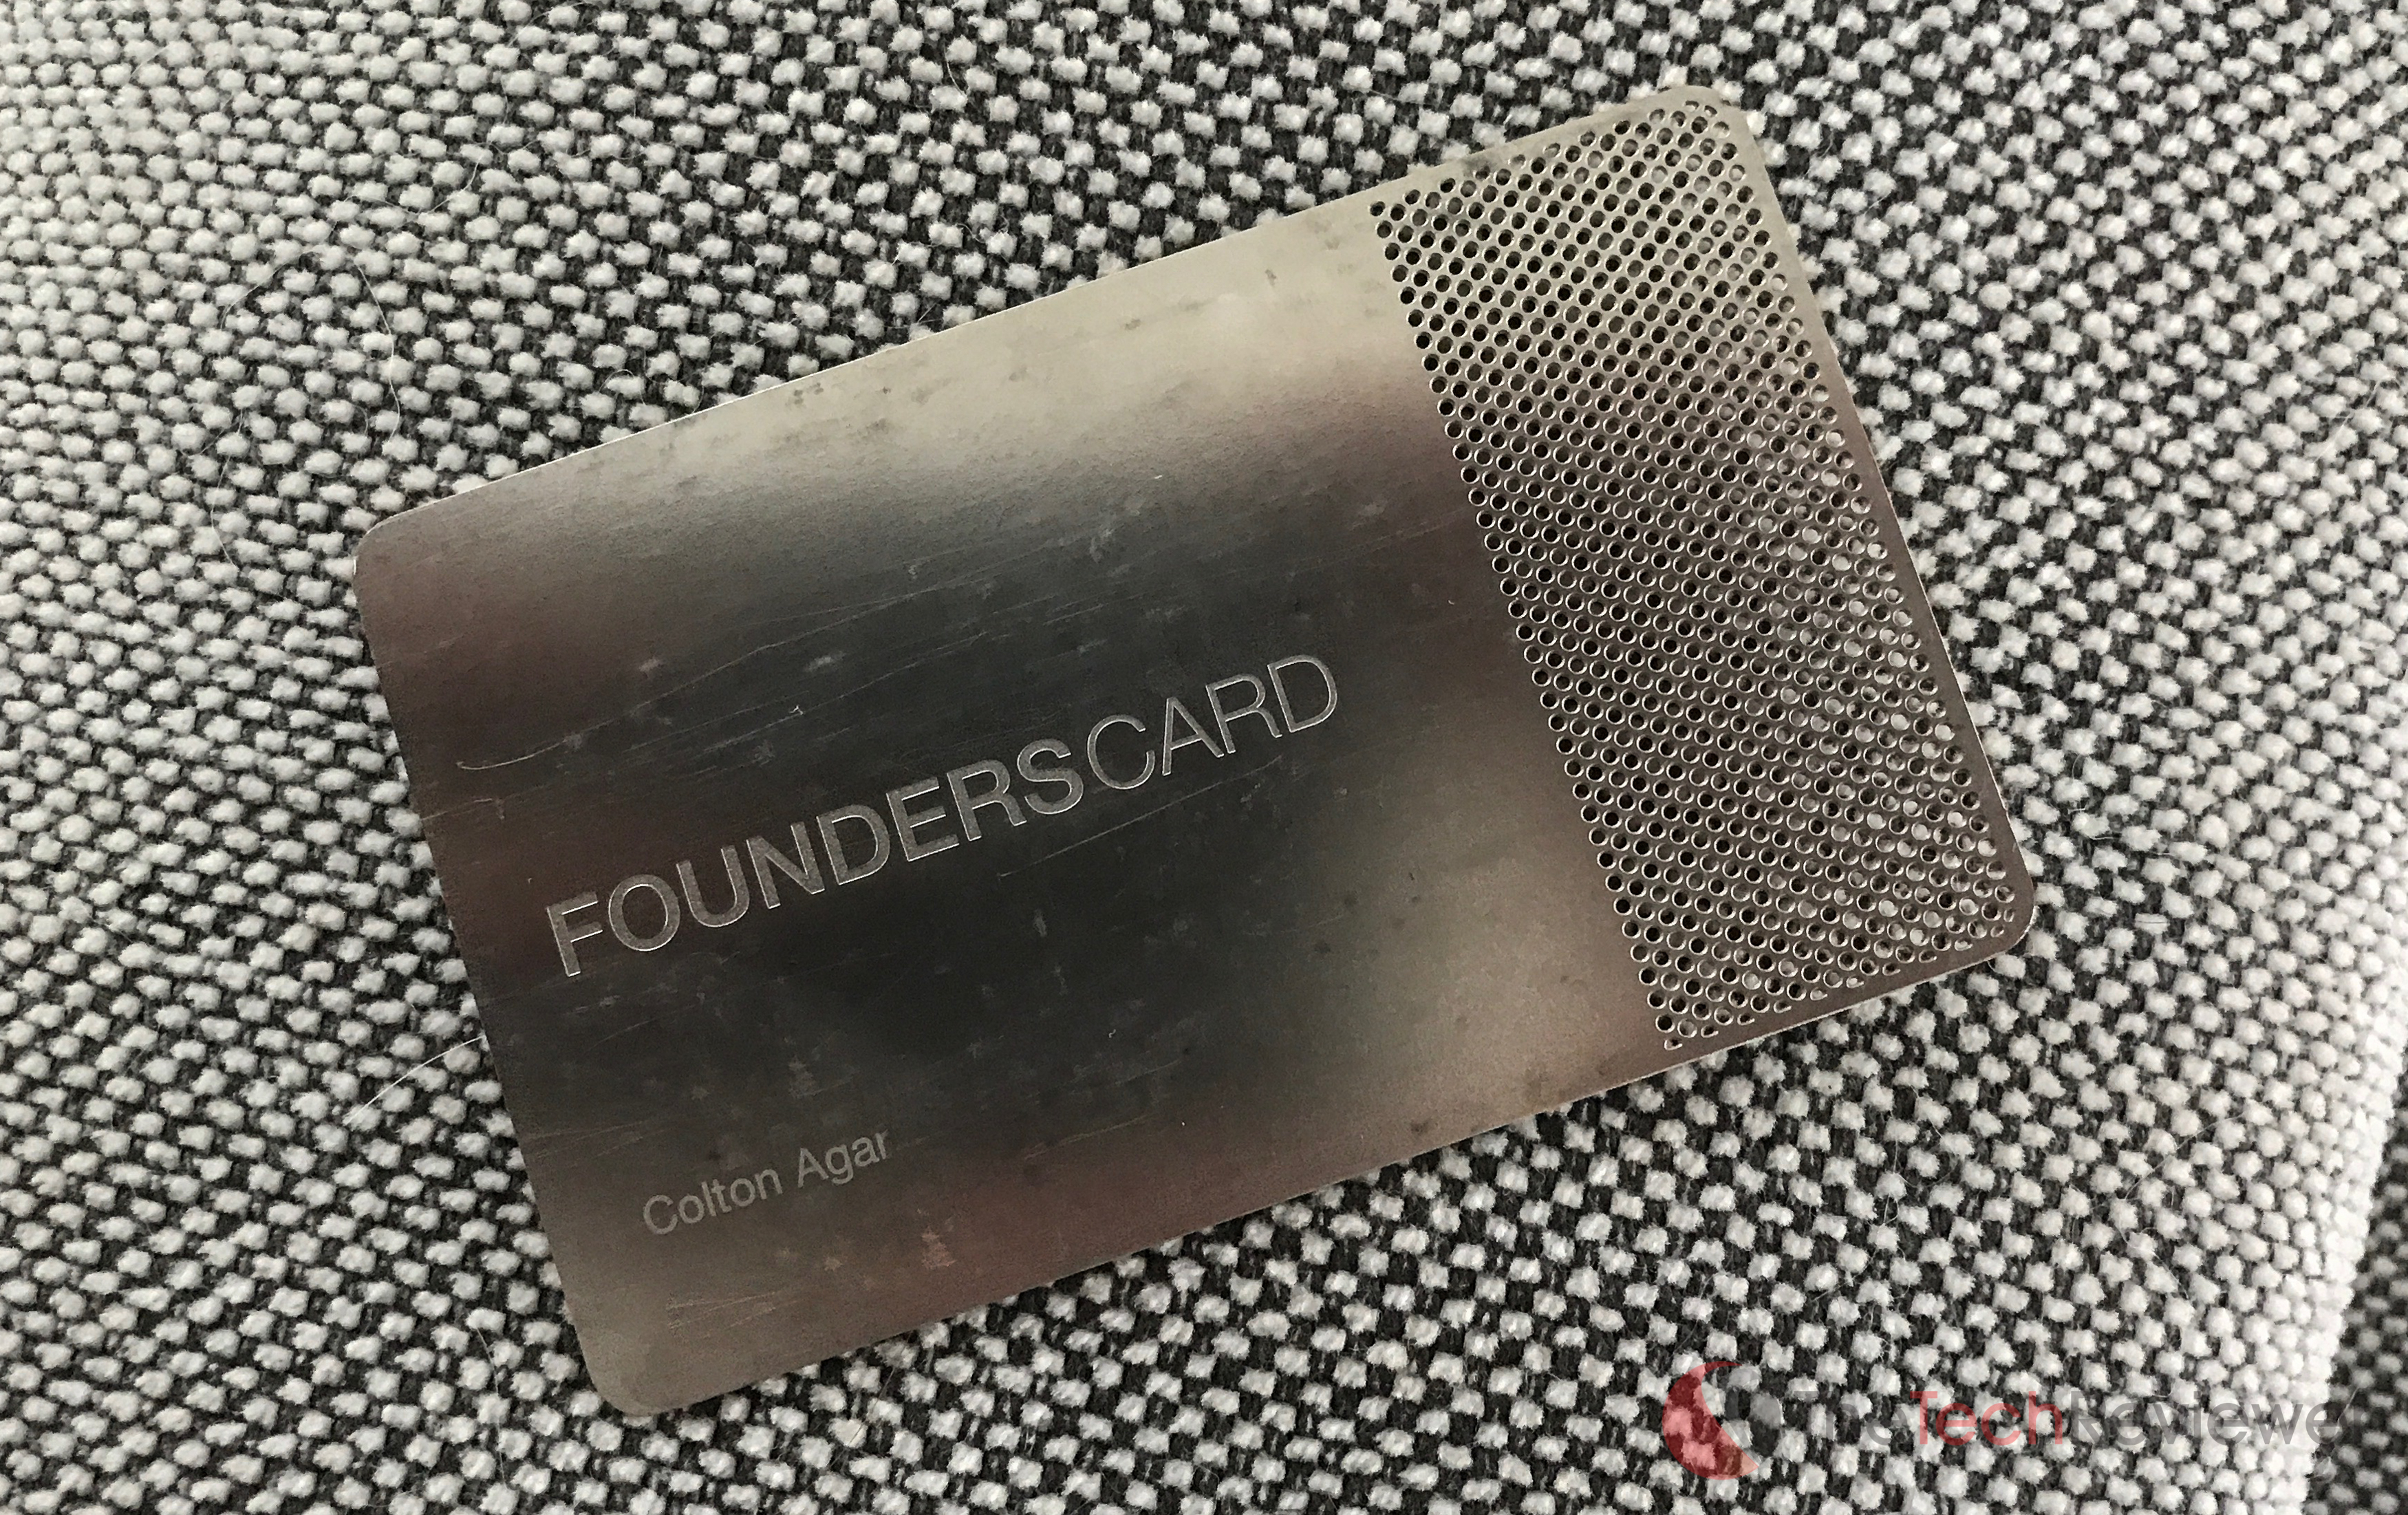 What Is FoundersCard?